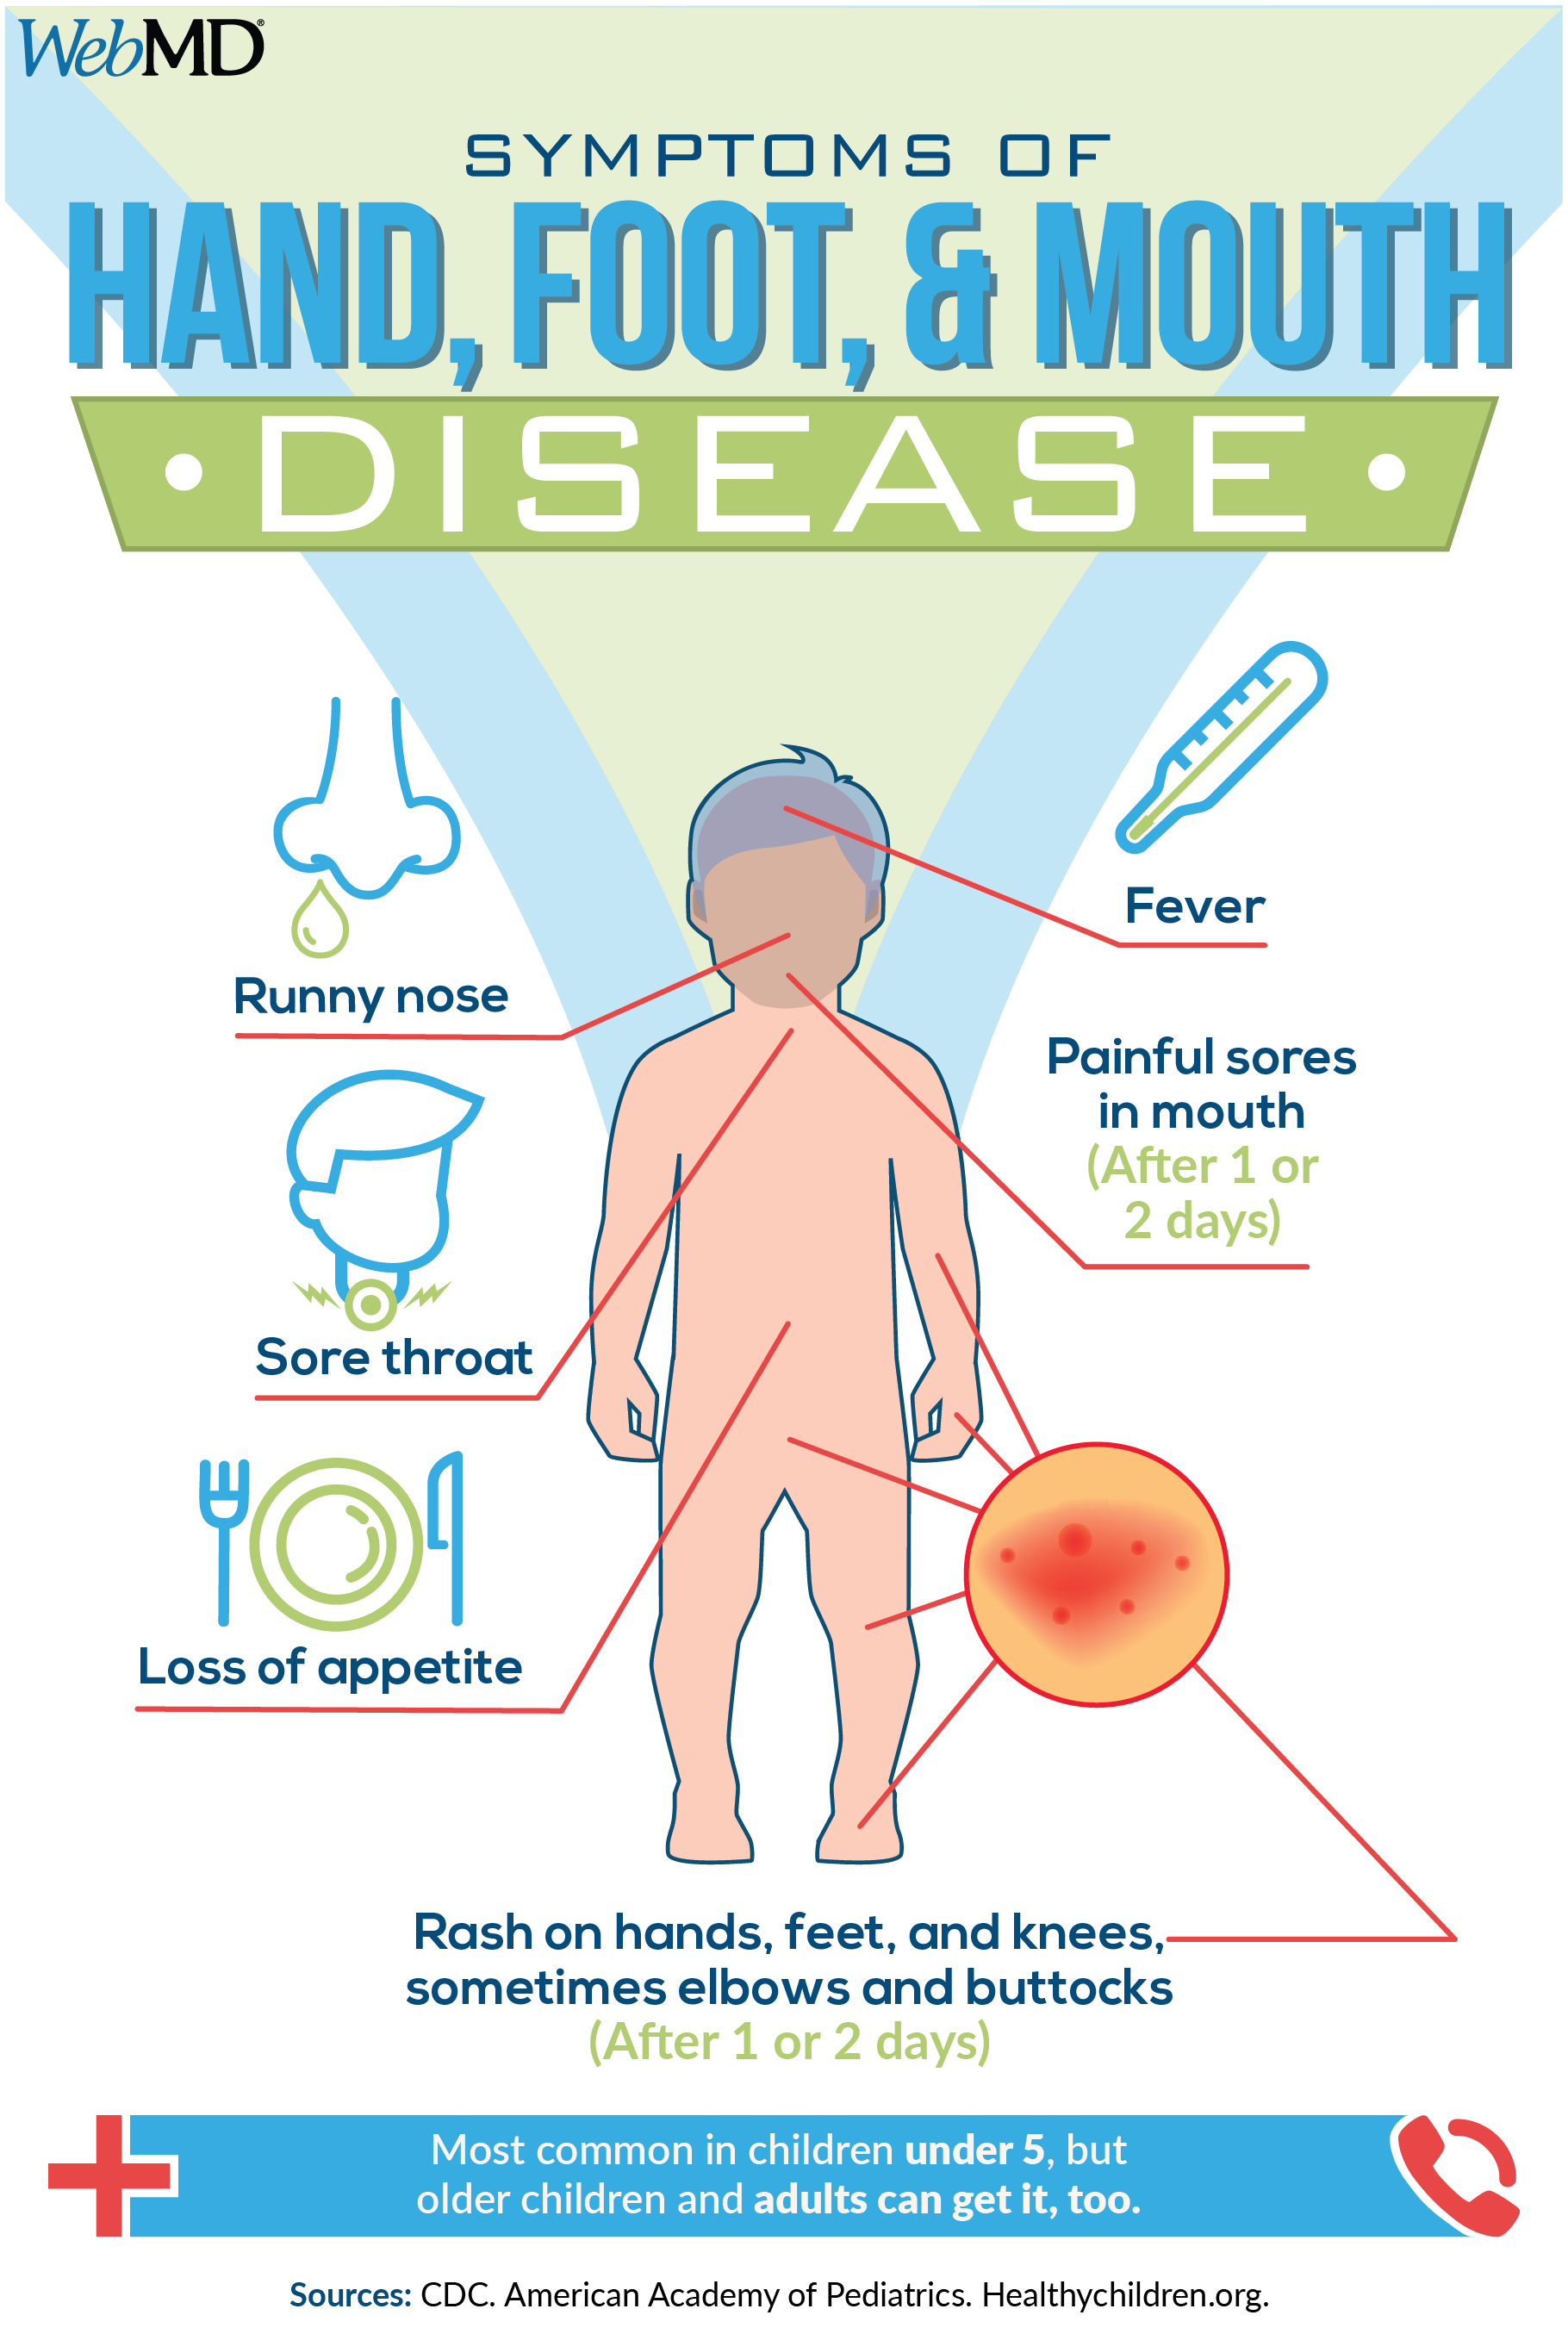 hand foot and mouth disease or hfmd is caused by a virus symptoms include ulcers or sores inside or around the mouth and a rash or blisters on the  [ 1820 x 2716 Pixel ]